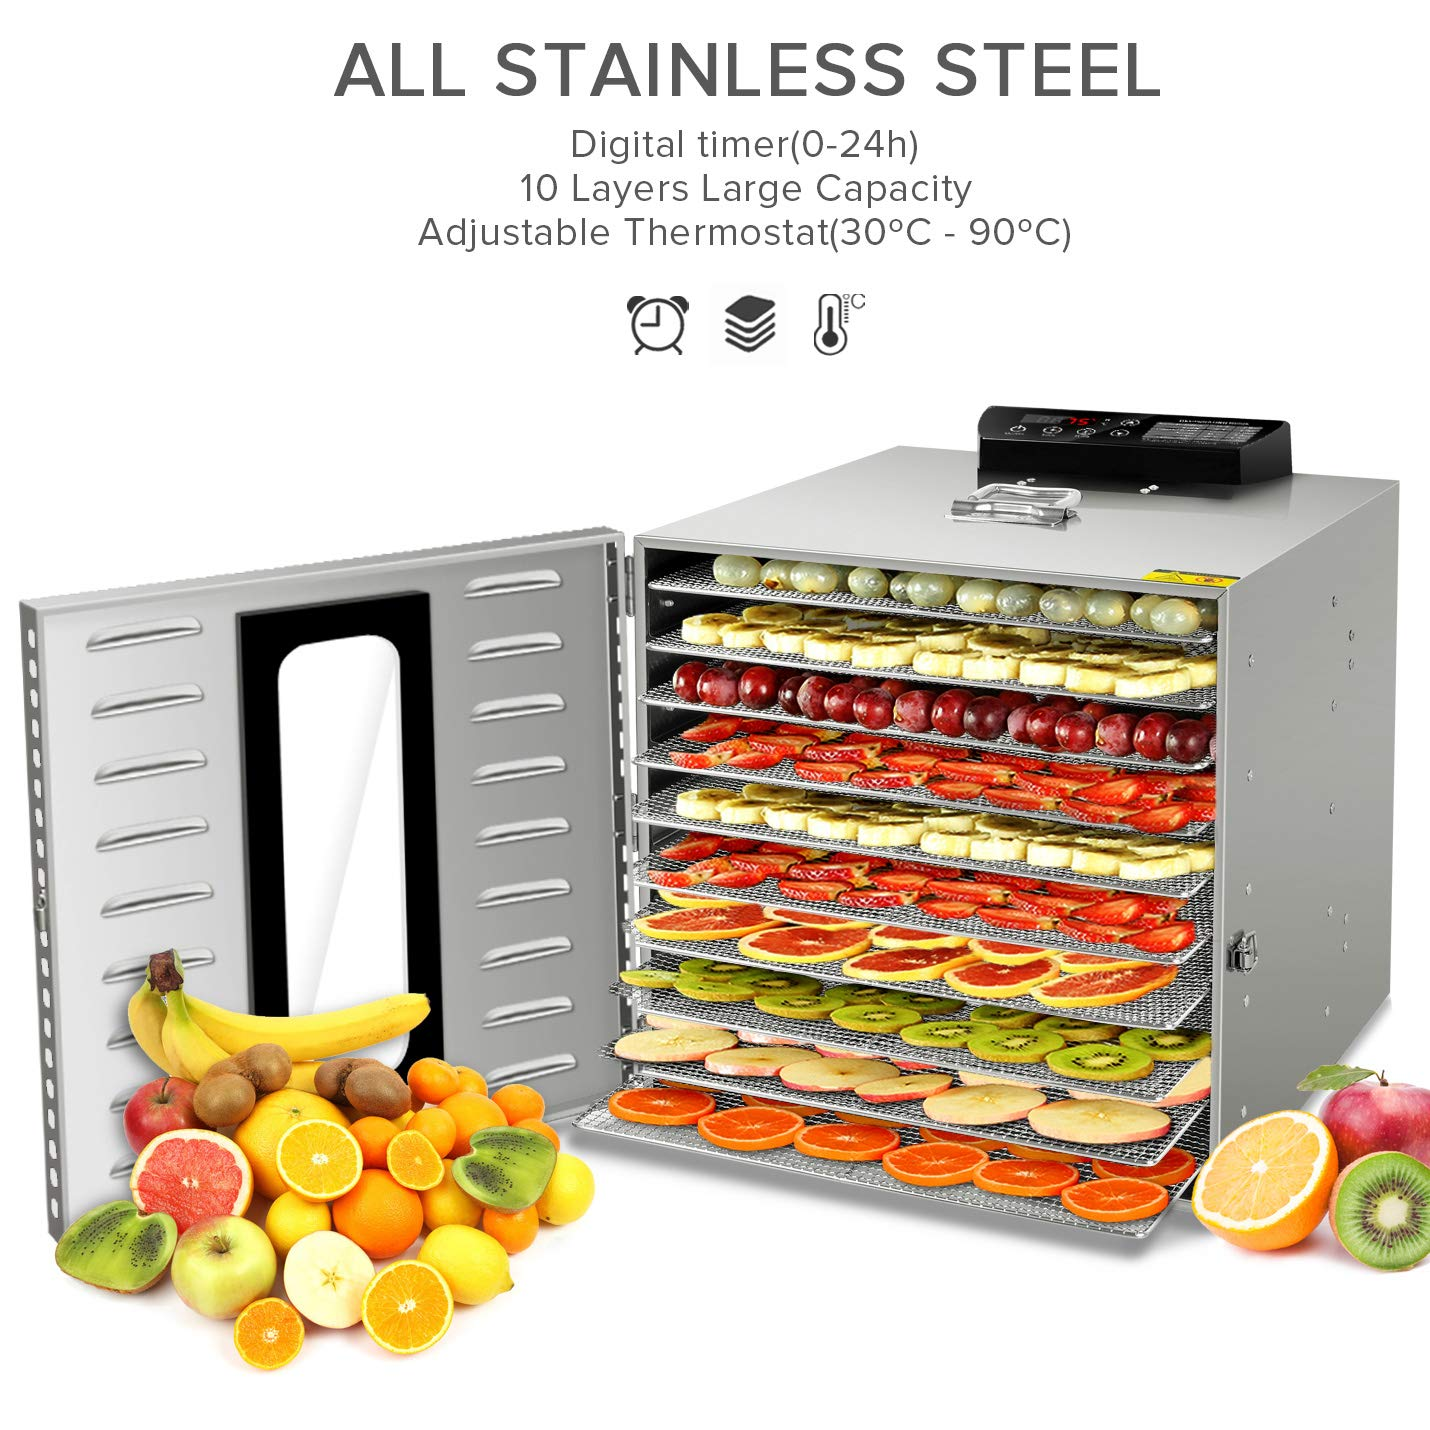 Commercial Stainless Steel Food Dehydrator-Raw Food & Jerky Fruit Dehydrator-1000W Preserve Food Nutrition Professional Household Vegetable Dryer,with 0~24 Hours Digital Timer (10 Trays) by SHOGOU